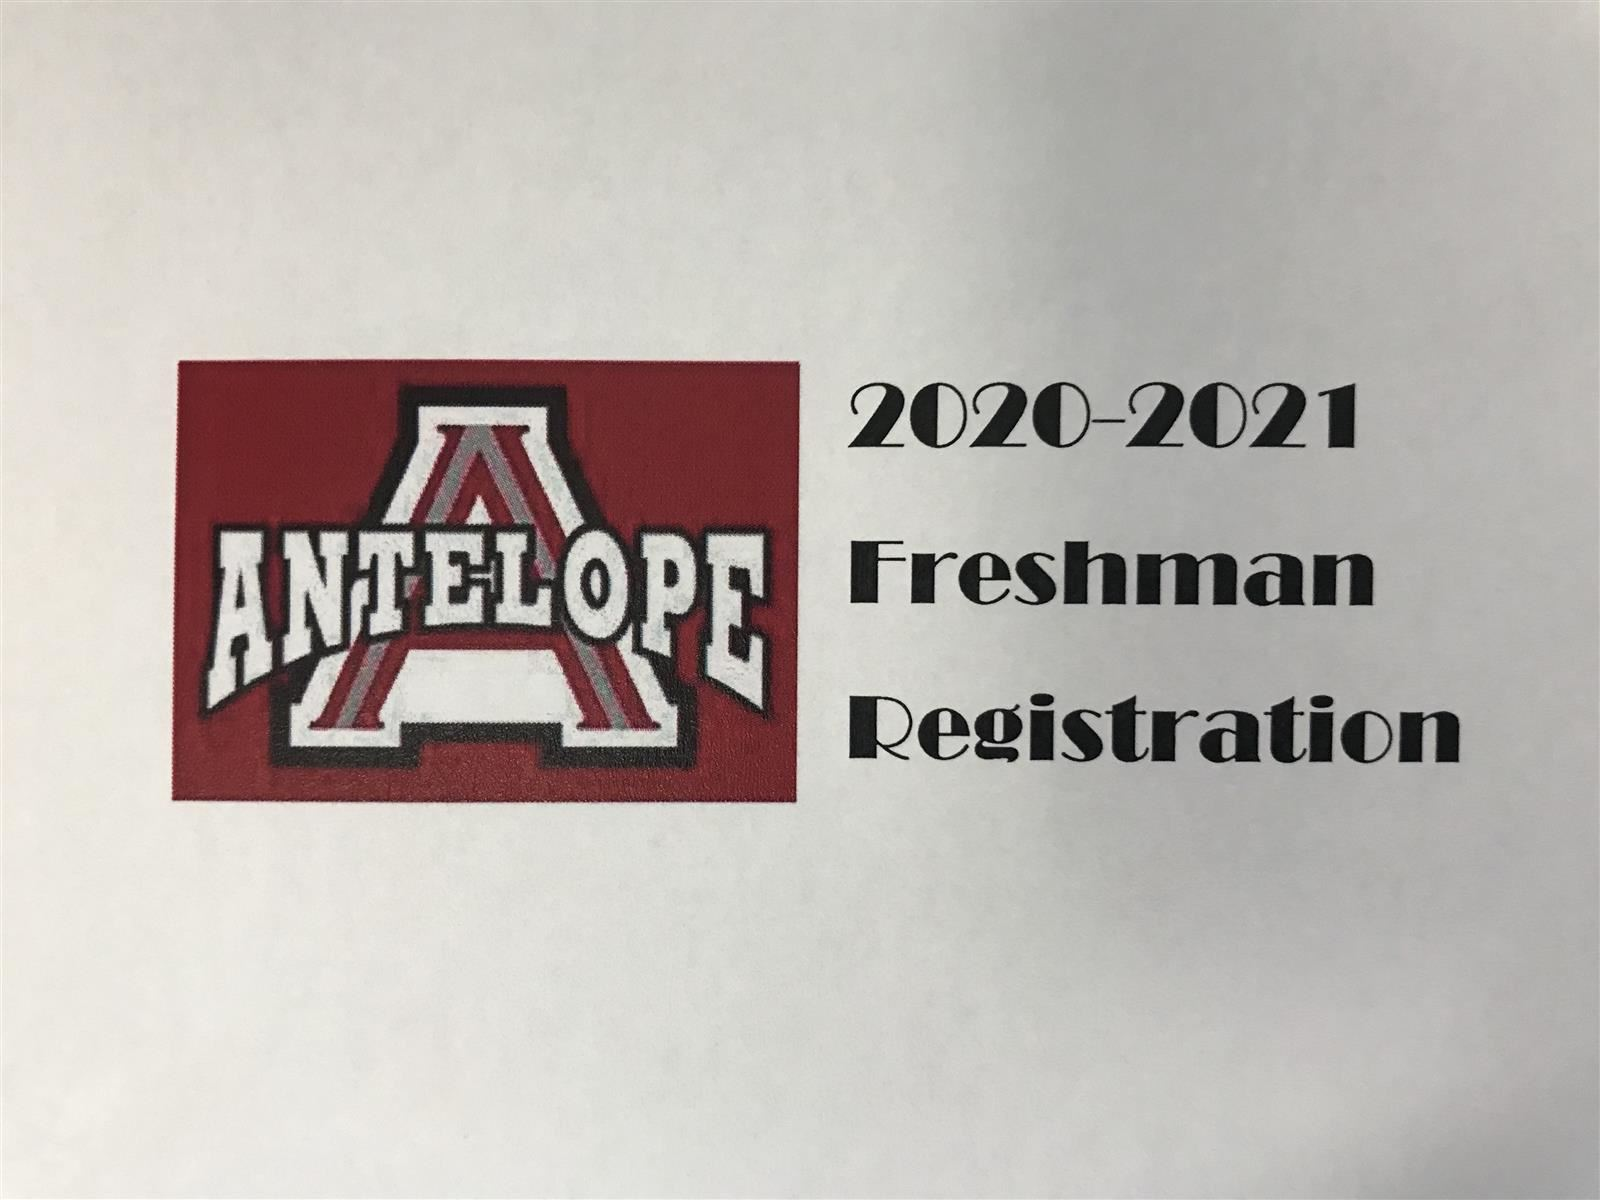 Red background Antelope word with Large white red and grey A 2020-2021 Freshman Registration